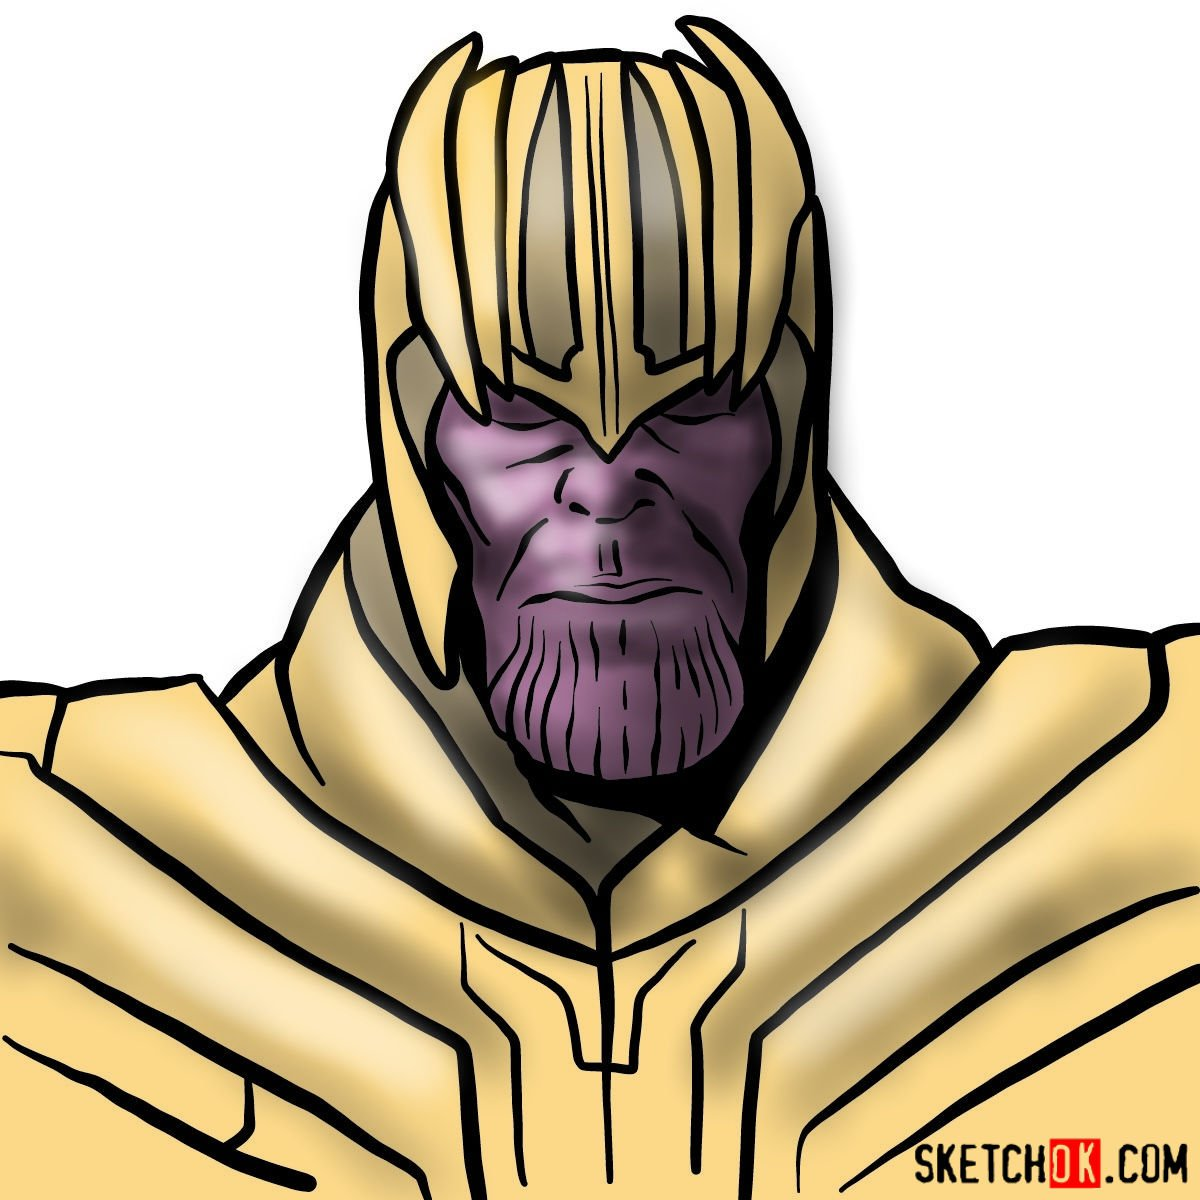 How to draw Thanos in his golden helmet